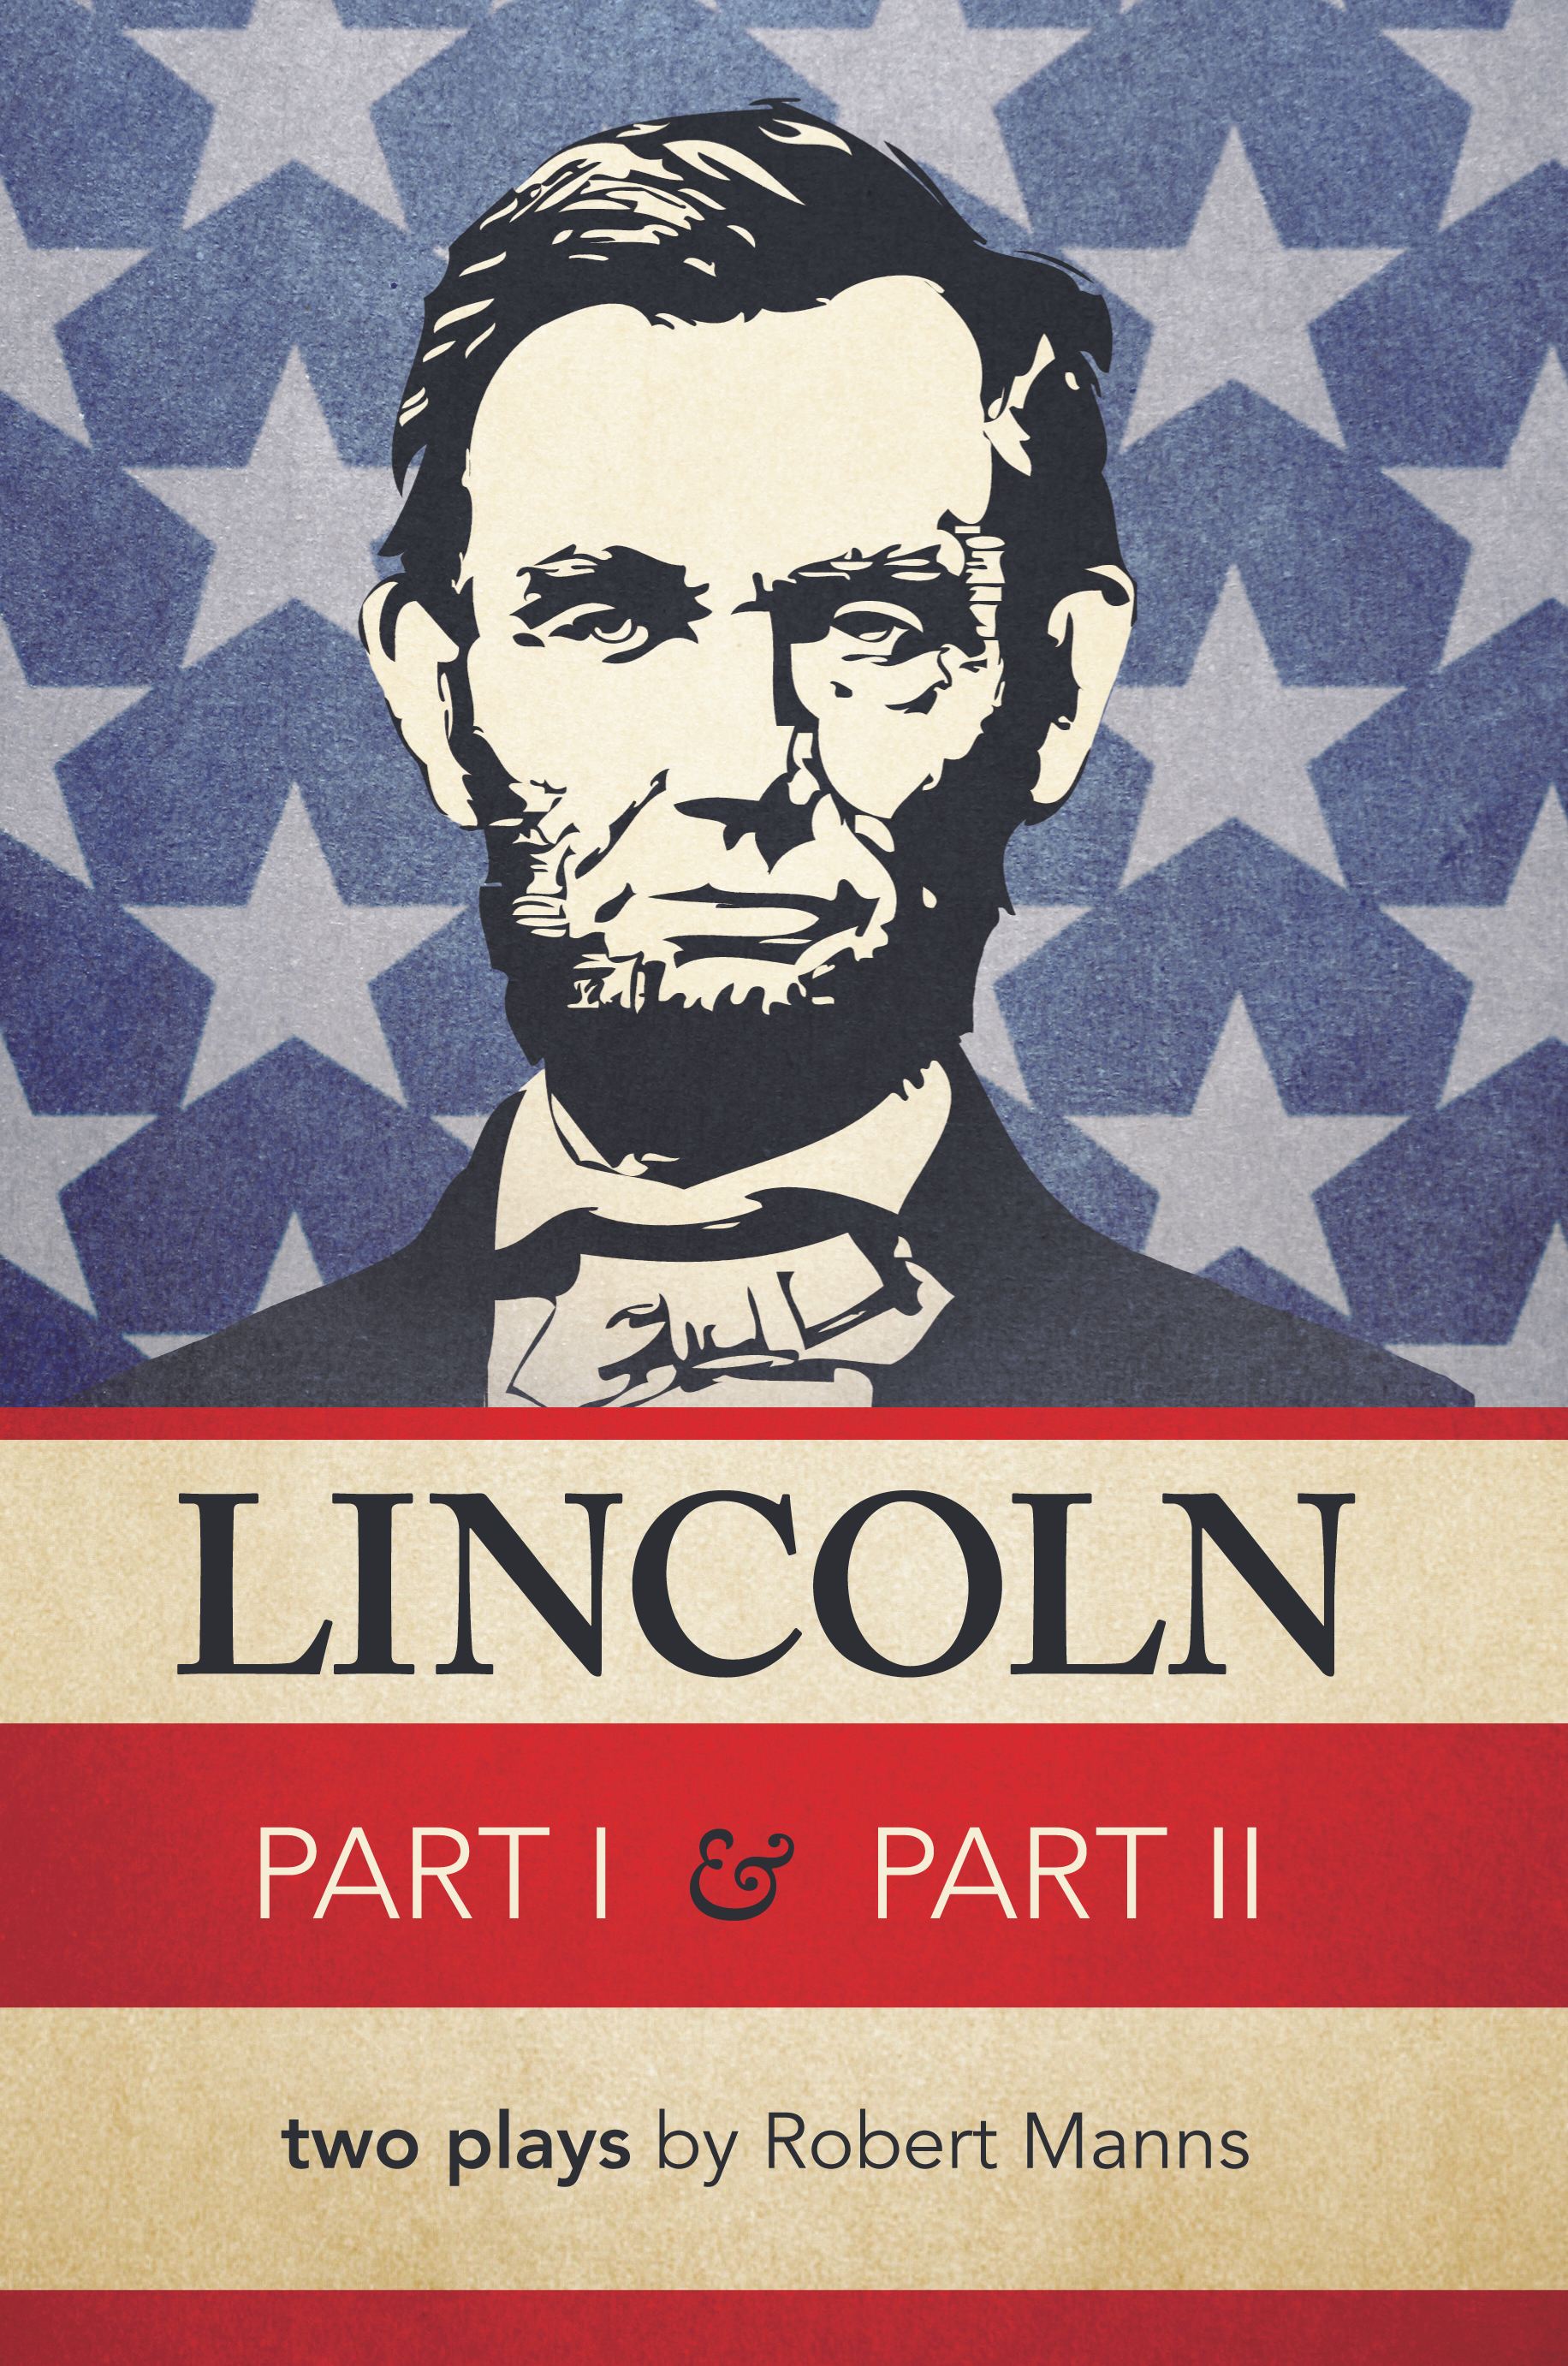 Lincoln Part I & Part II